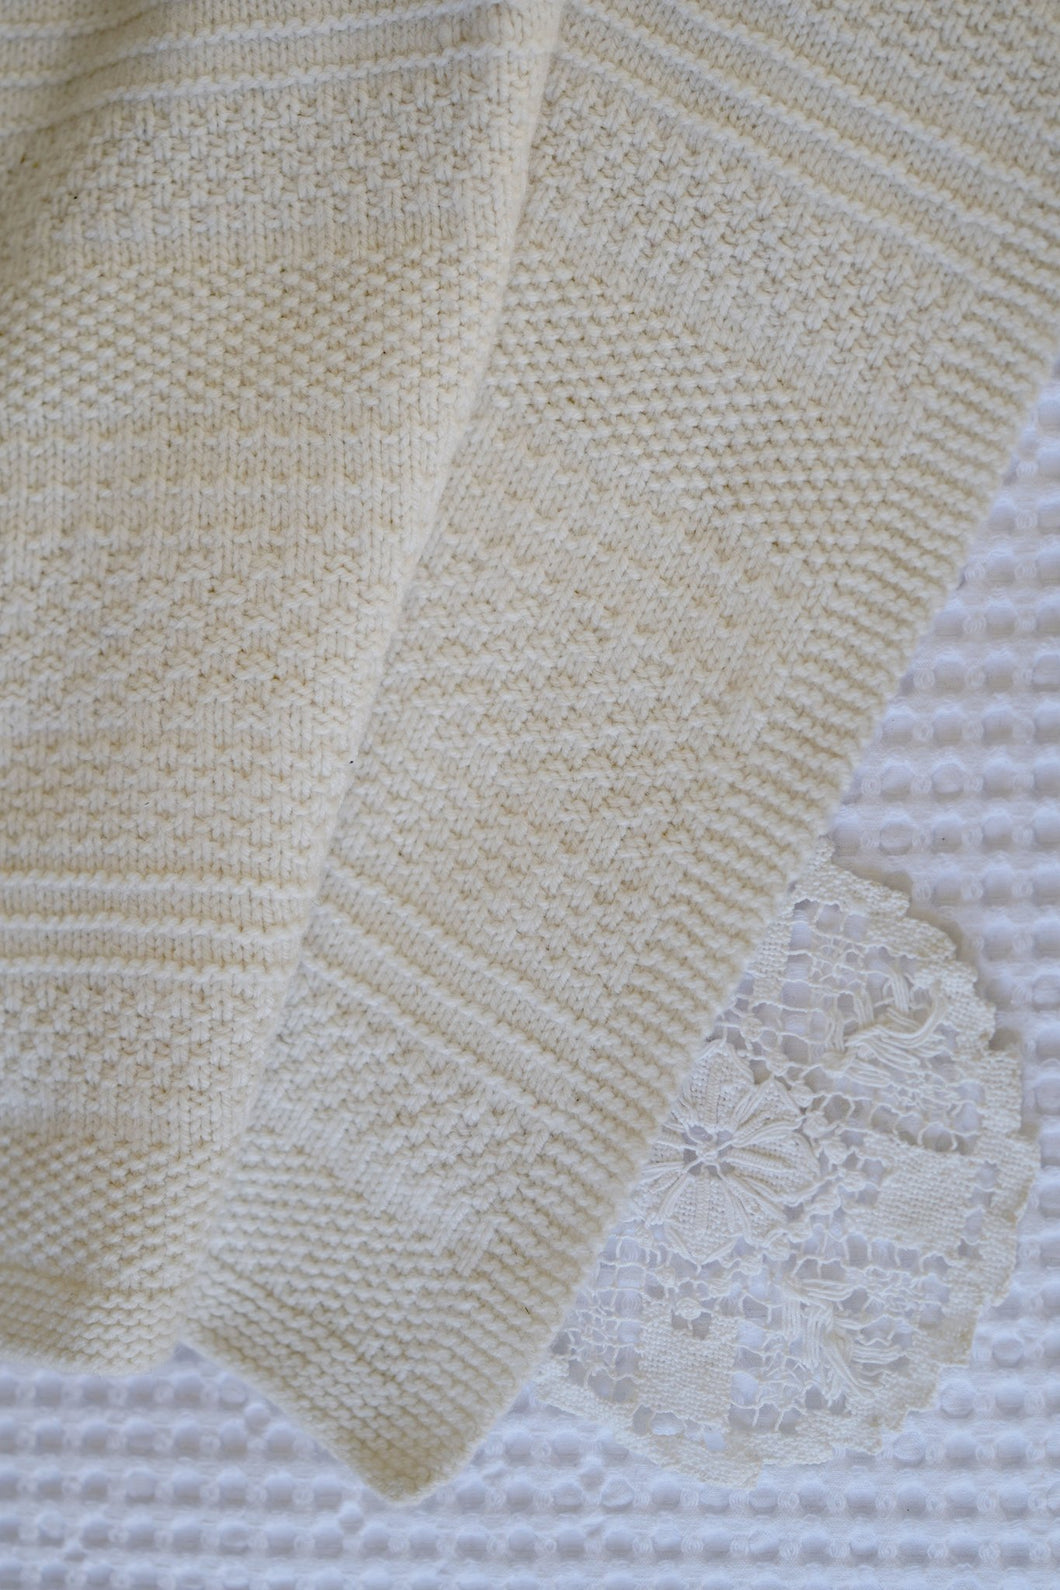 LisaF Knit and Purl blanket knitting pattern at Eskdale Yarns